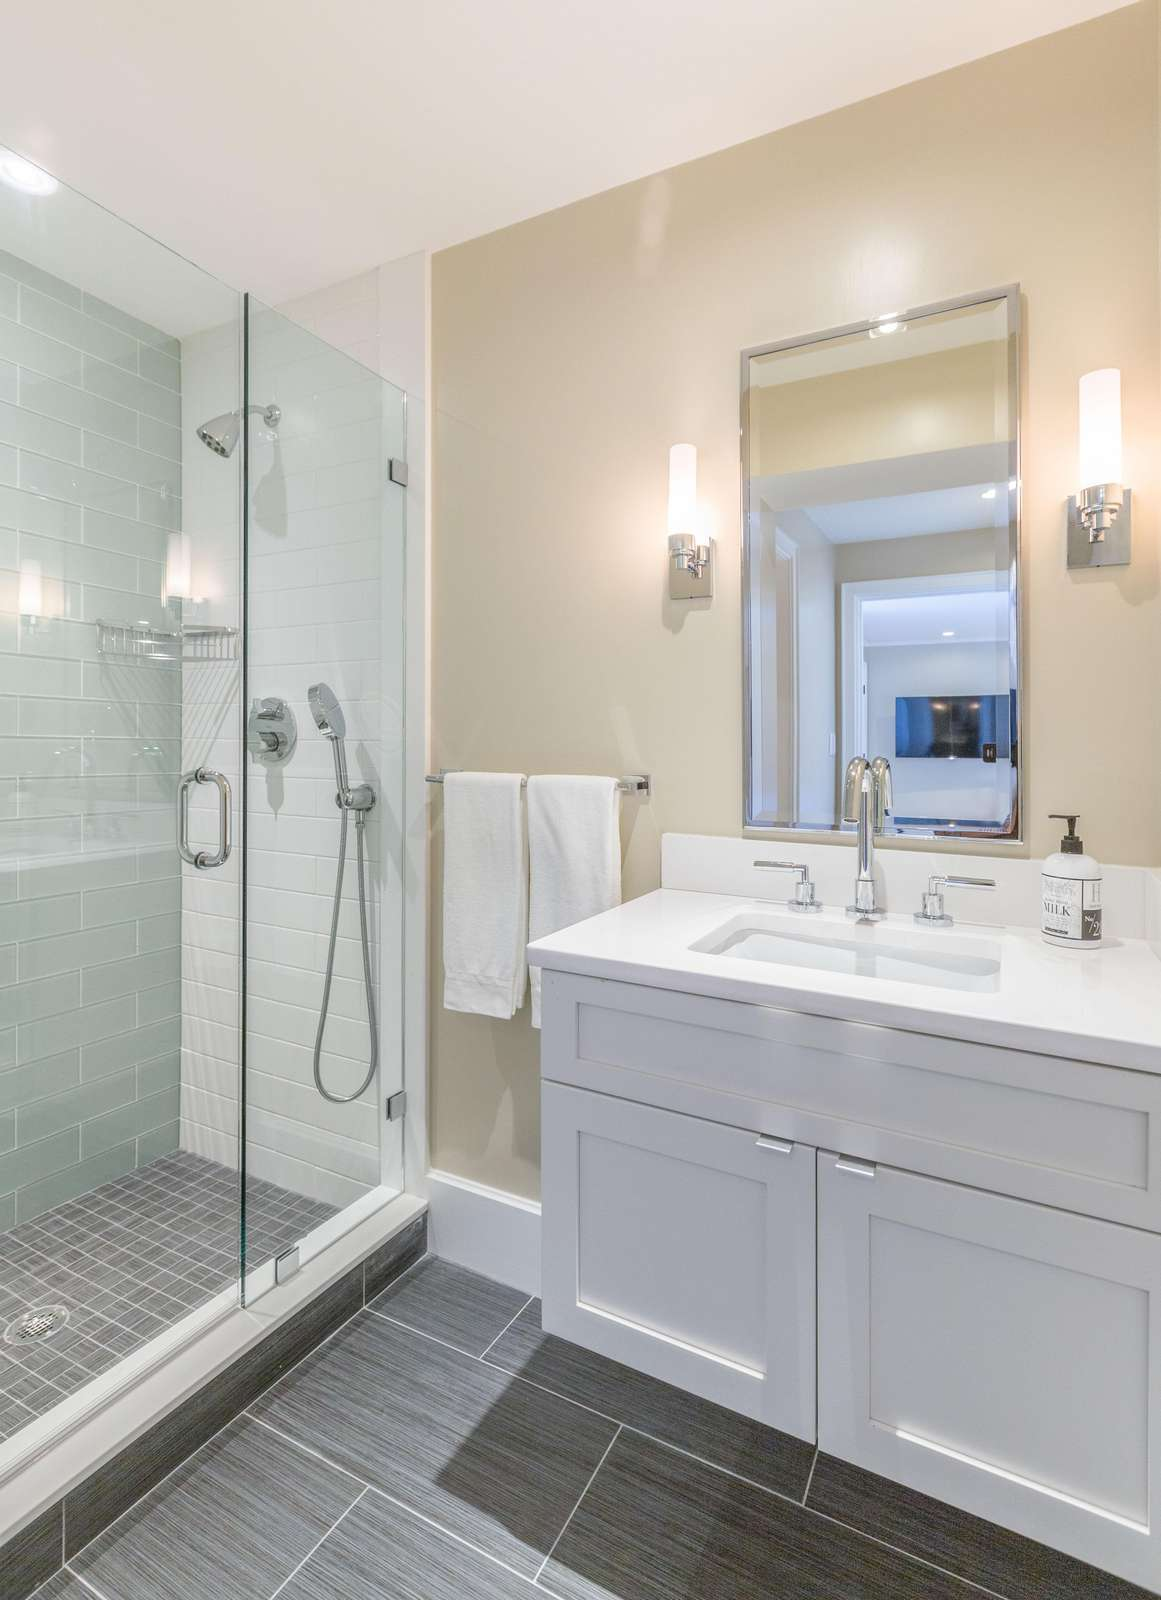 Full bathroom with gorgeous tile shower, glass doors and 2 shower heads